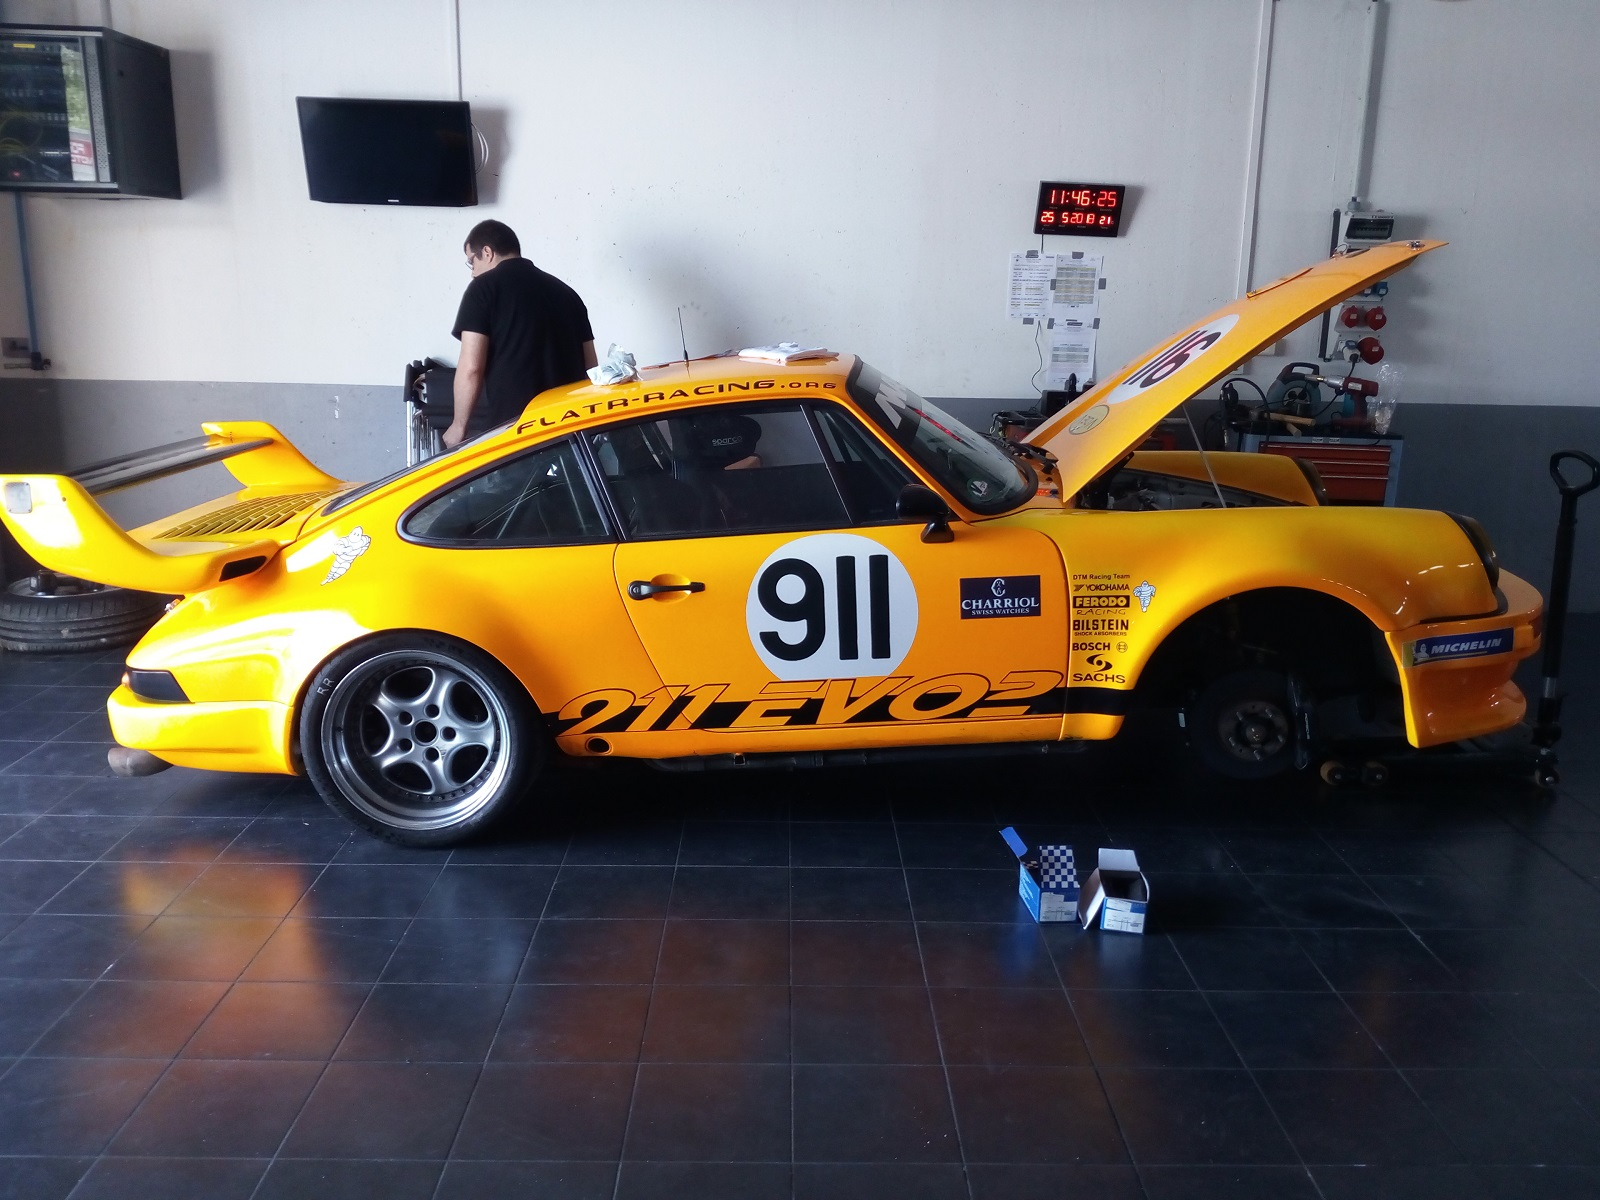 [968 TURBO] Une 968 turbo Rs replica pour courrir - Page 37 Img_2104